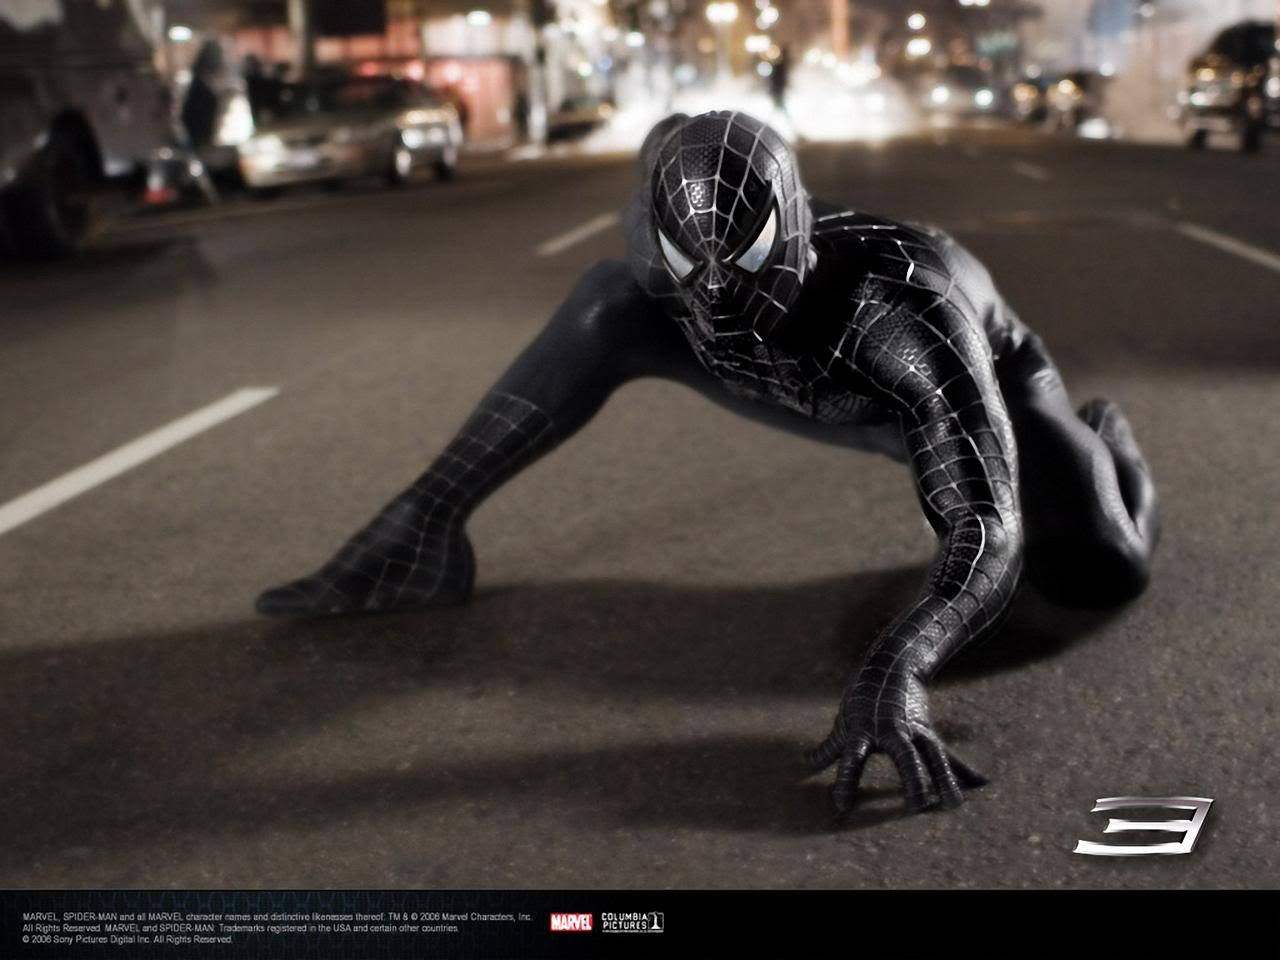 Spider-Man3Wallpaper19-1024.jpg